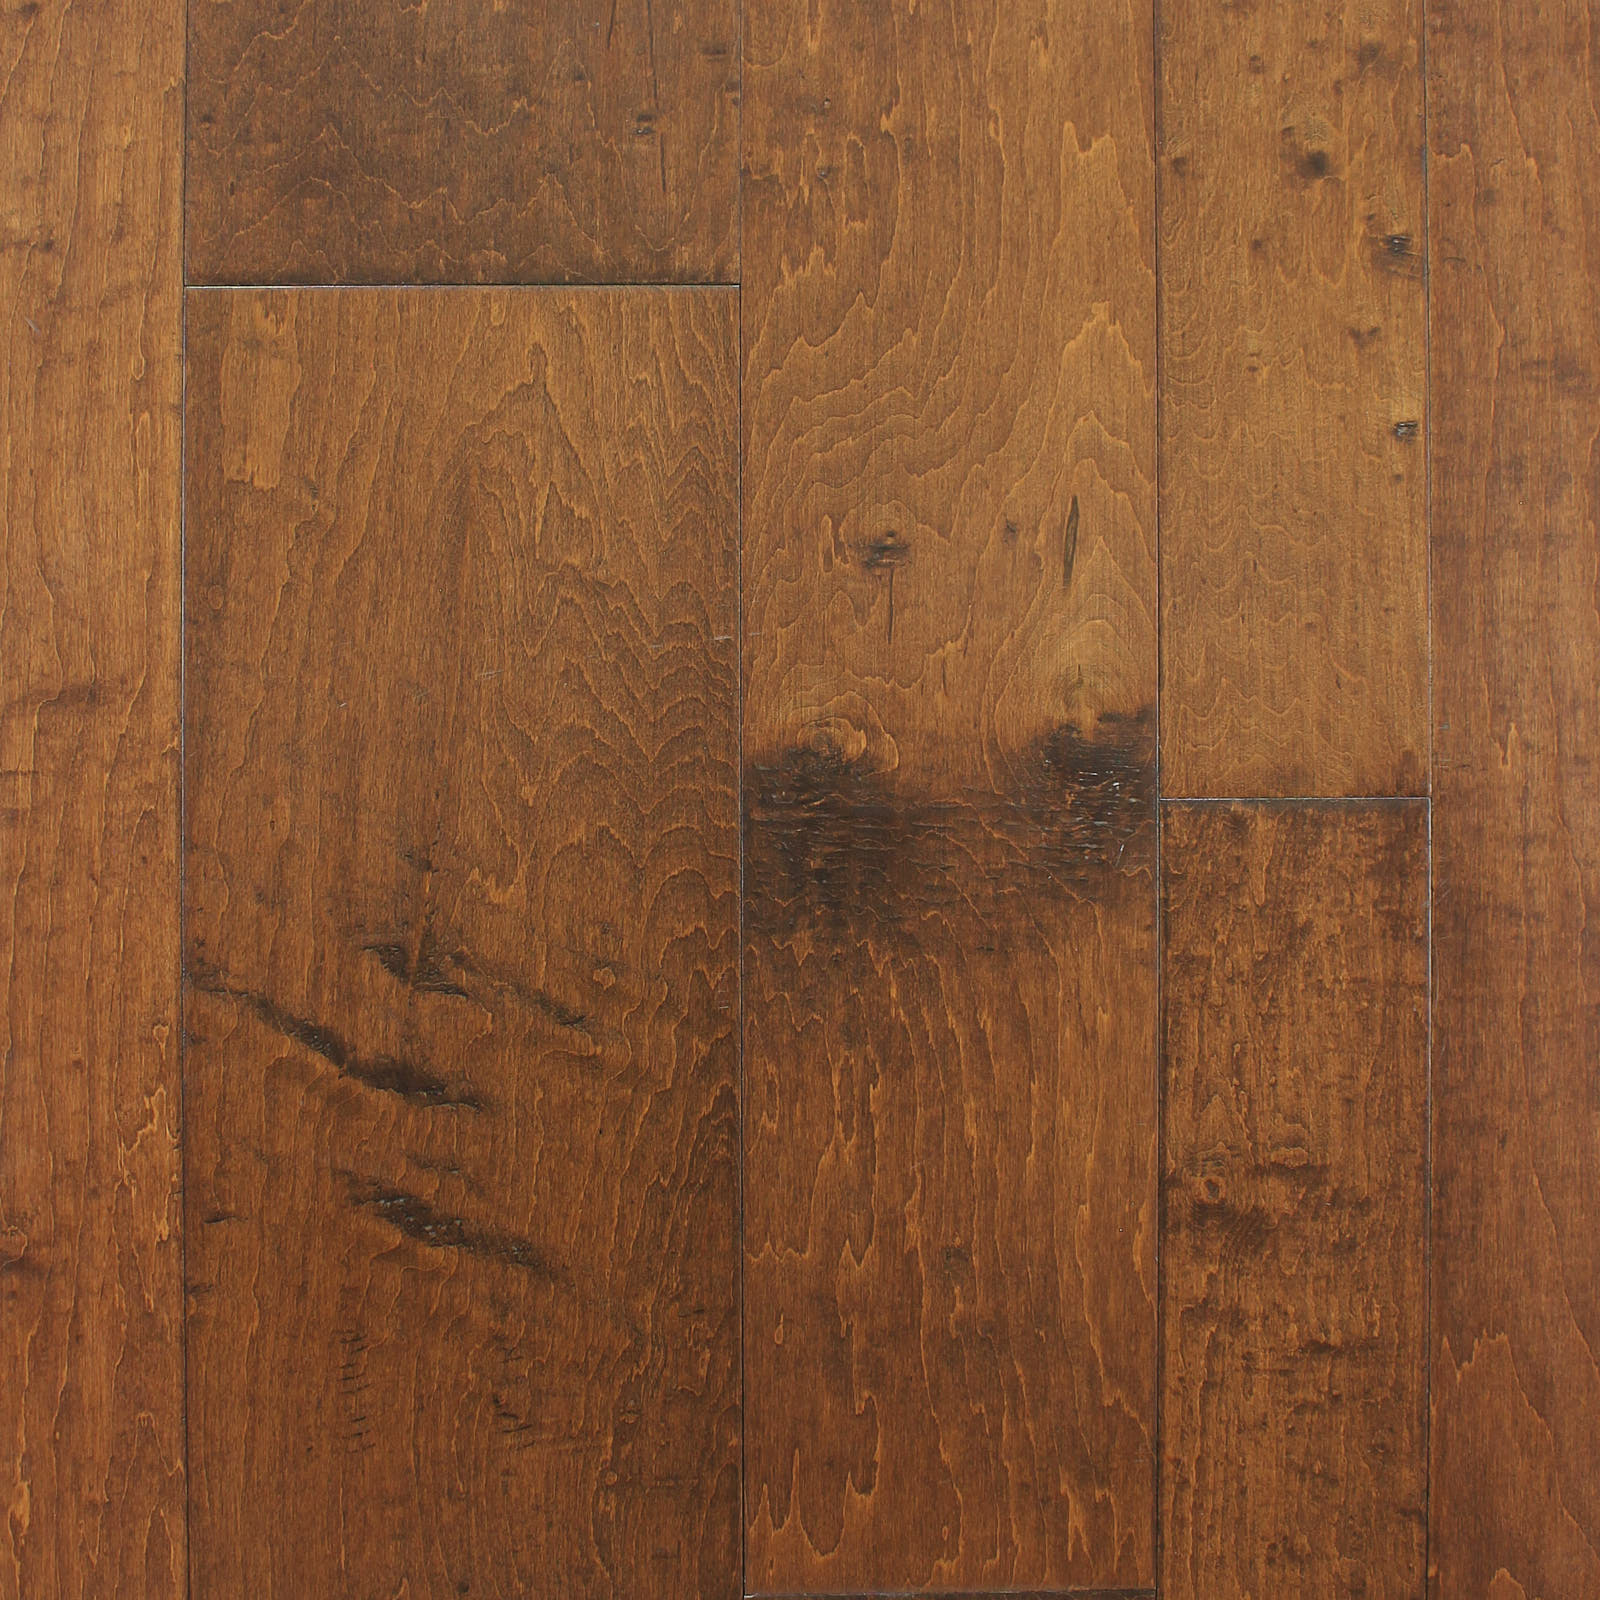 Villa Tuscana Lorraine Engineered Hardwood Flooring